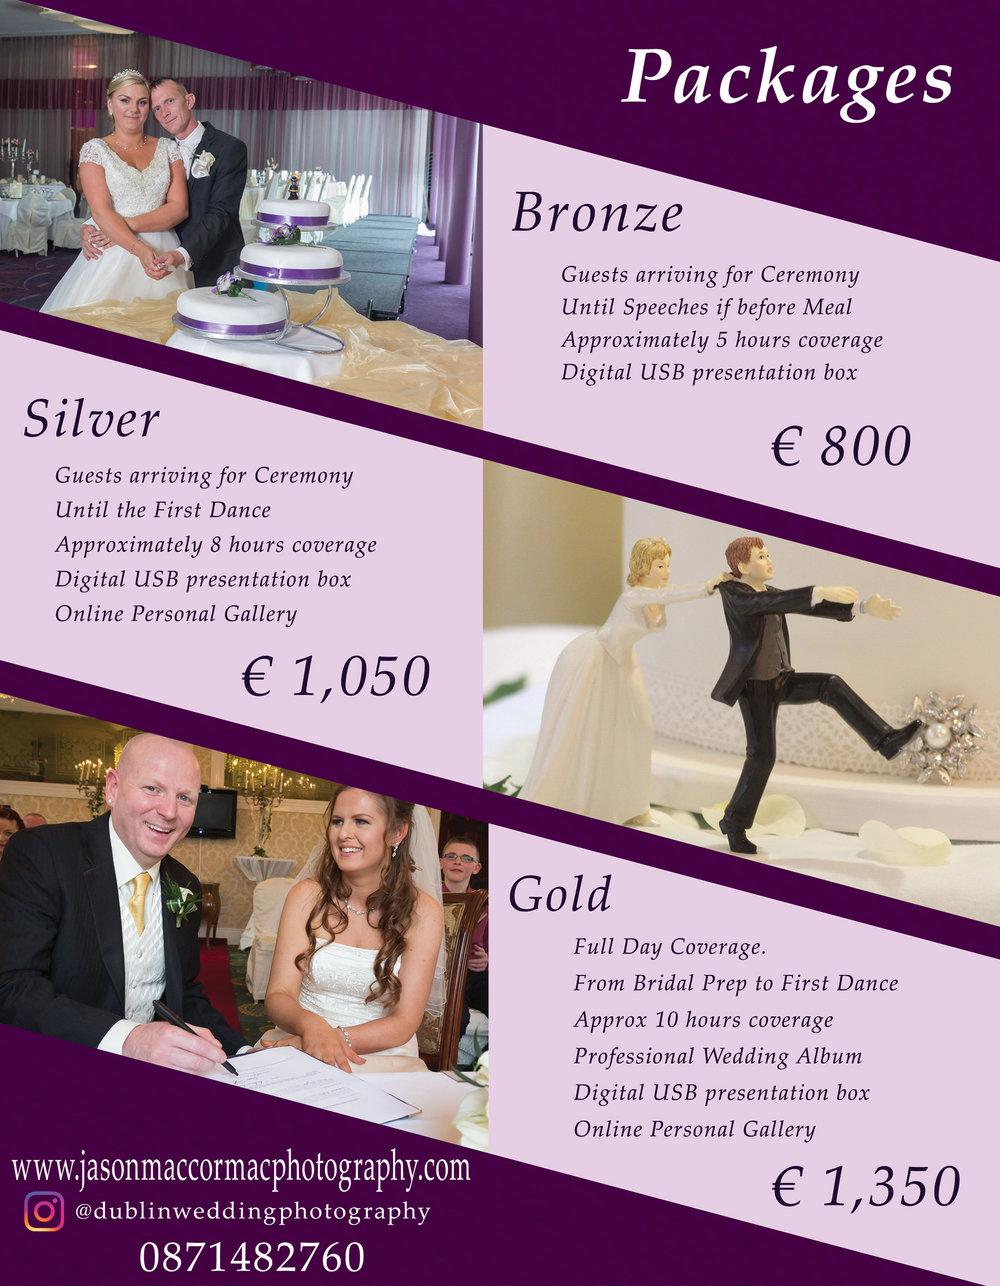 Wedding Photography Prices 2018 - Bespoke packages and additional options also available.